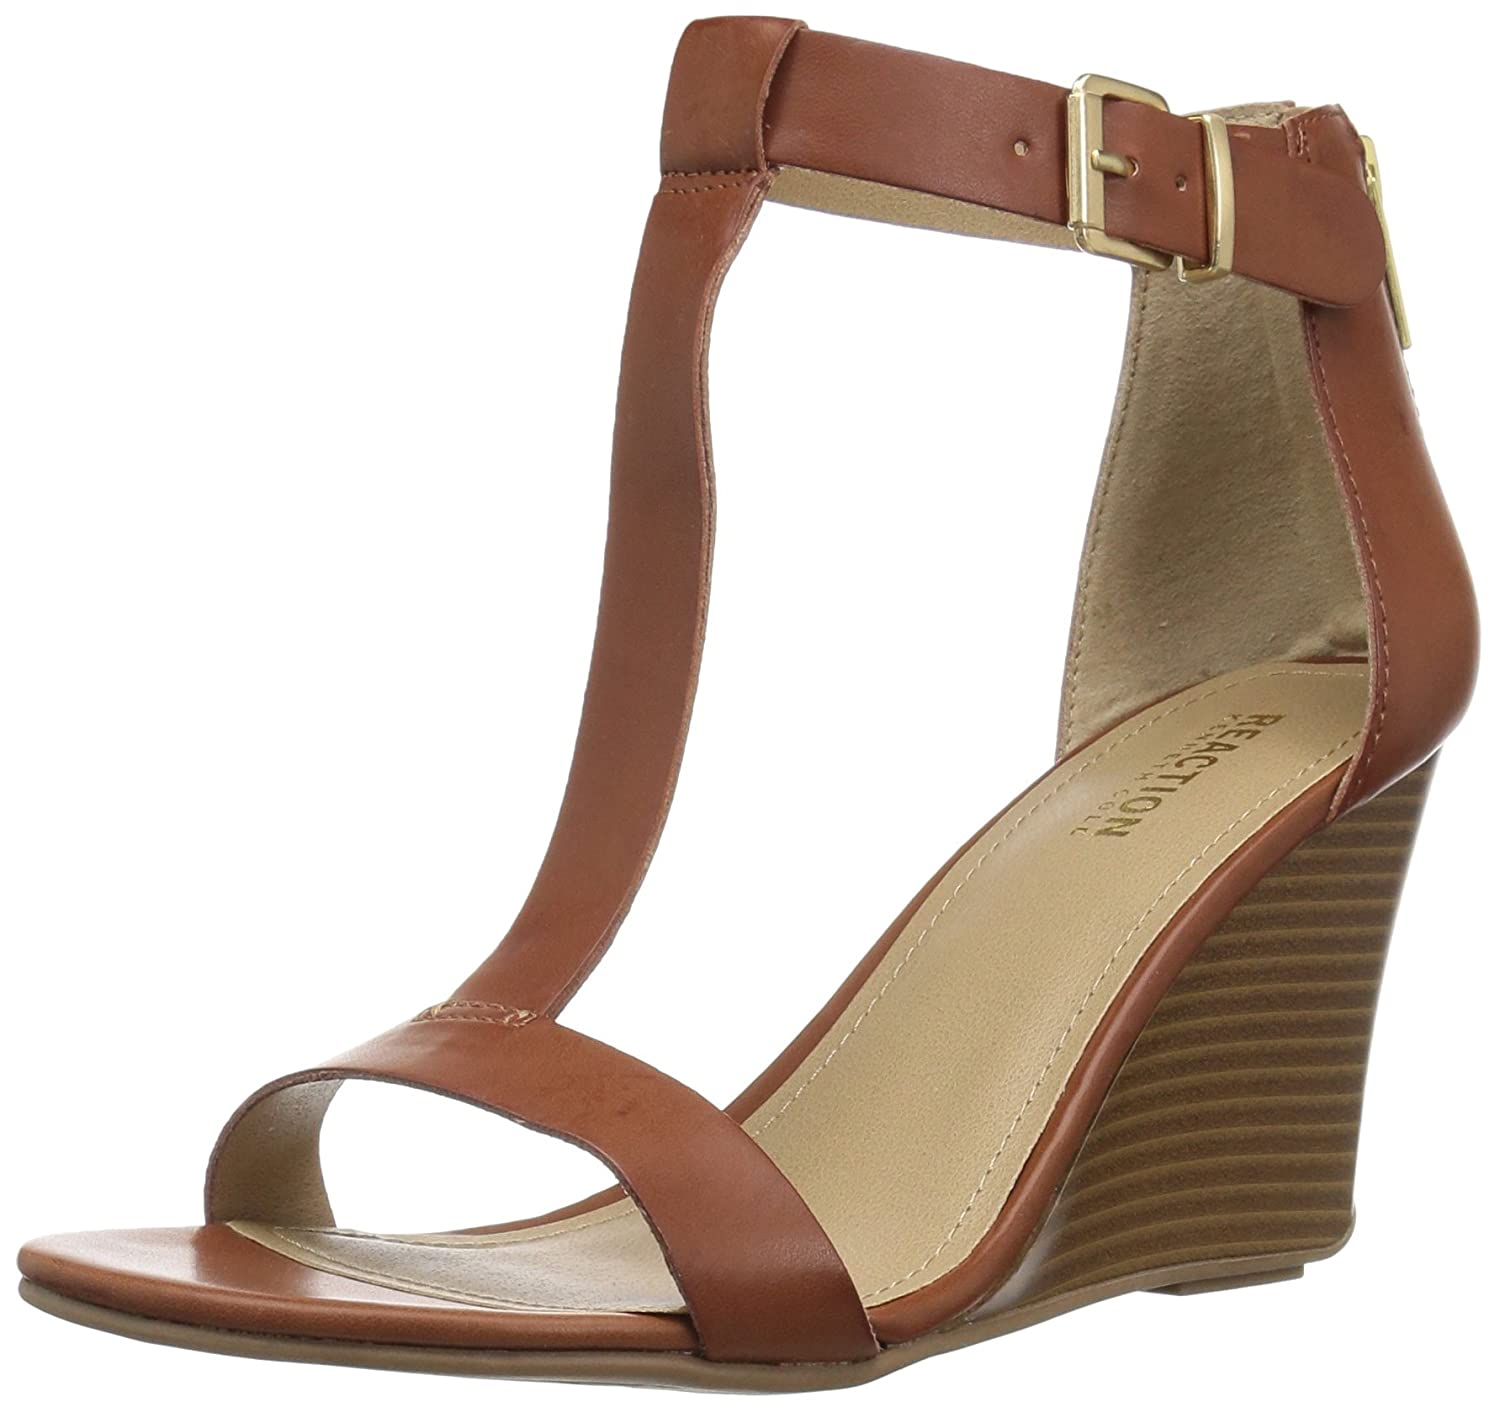 Kenneth Cole REACTION Women's 7 Ava Crave T-Strap Wedge Sandal B079Z2XYJG 10 B(M) US|Toffee